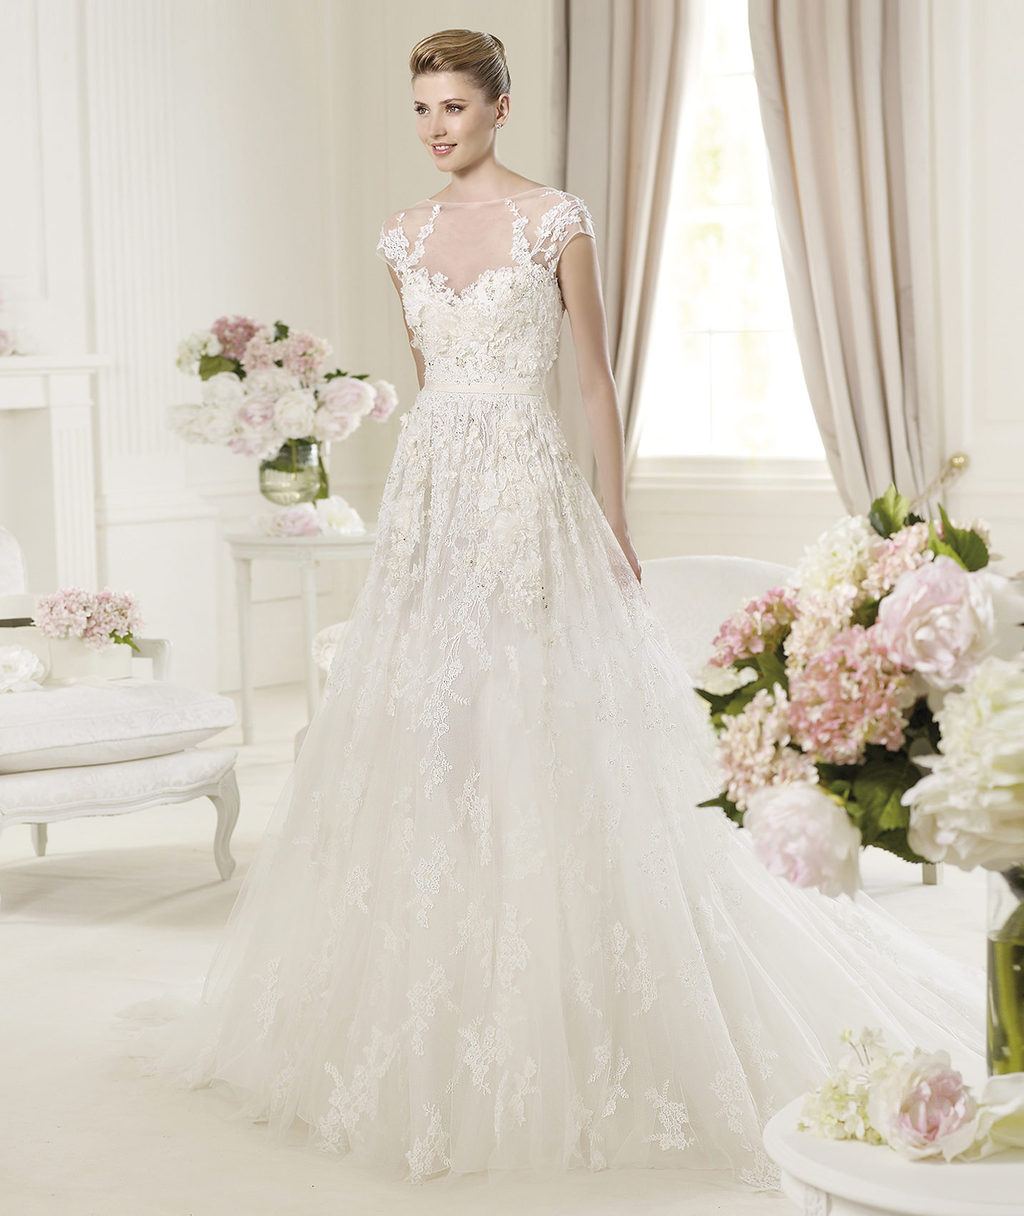 Best place to buy bridesmaid dresses vosoi where to buy bridesmaids dresses online best shopping websites ombrellifo Gallery